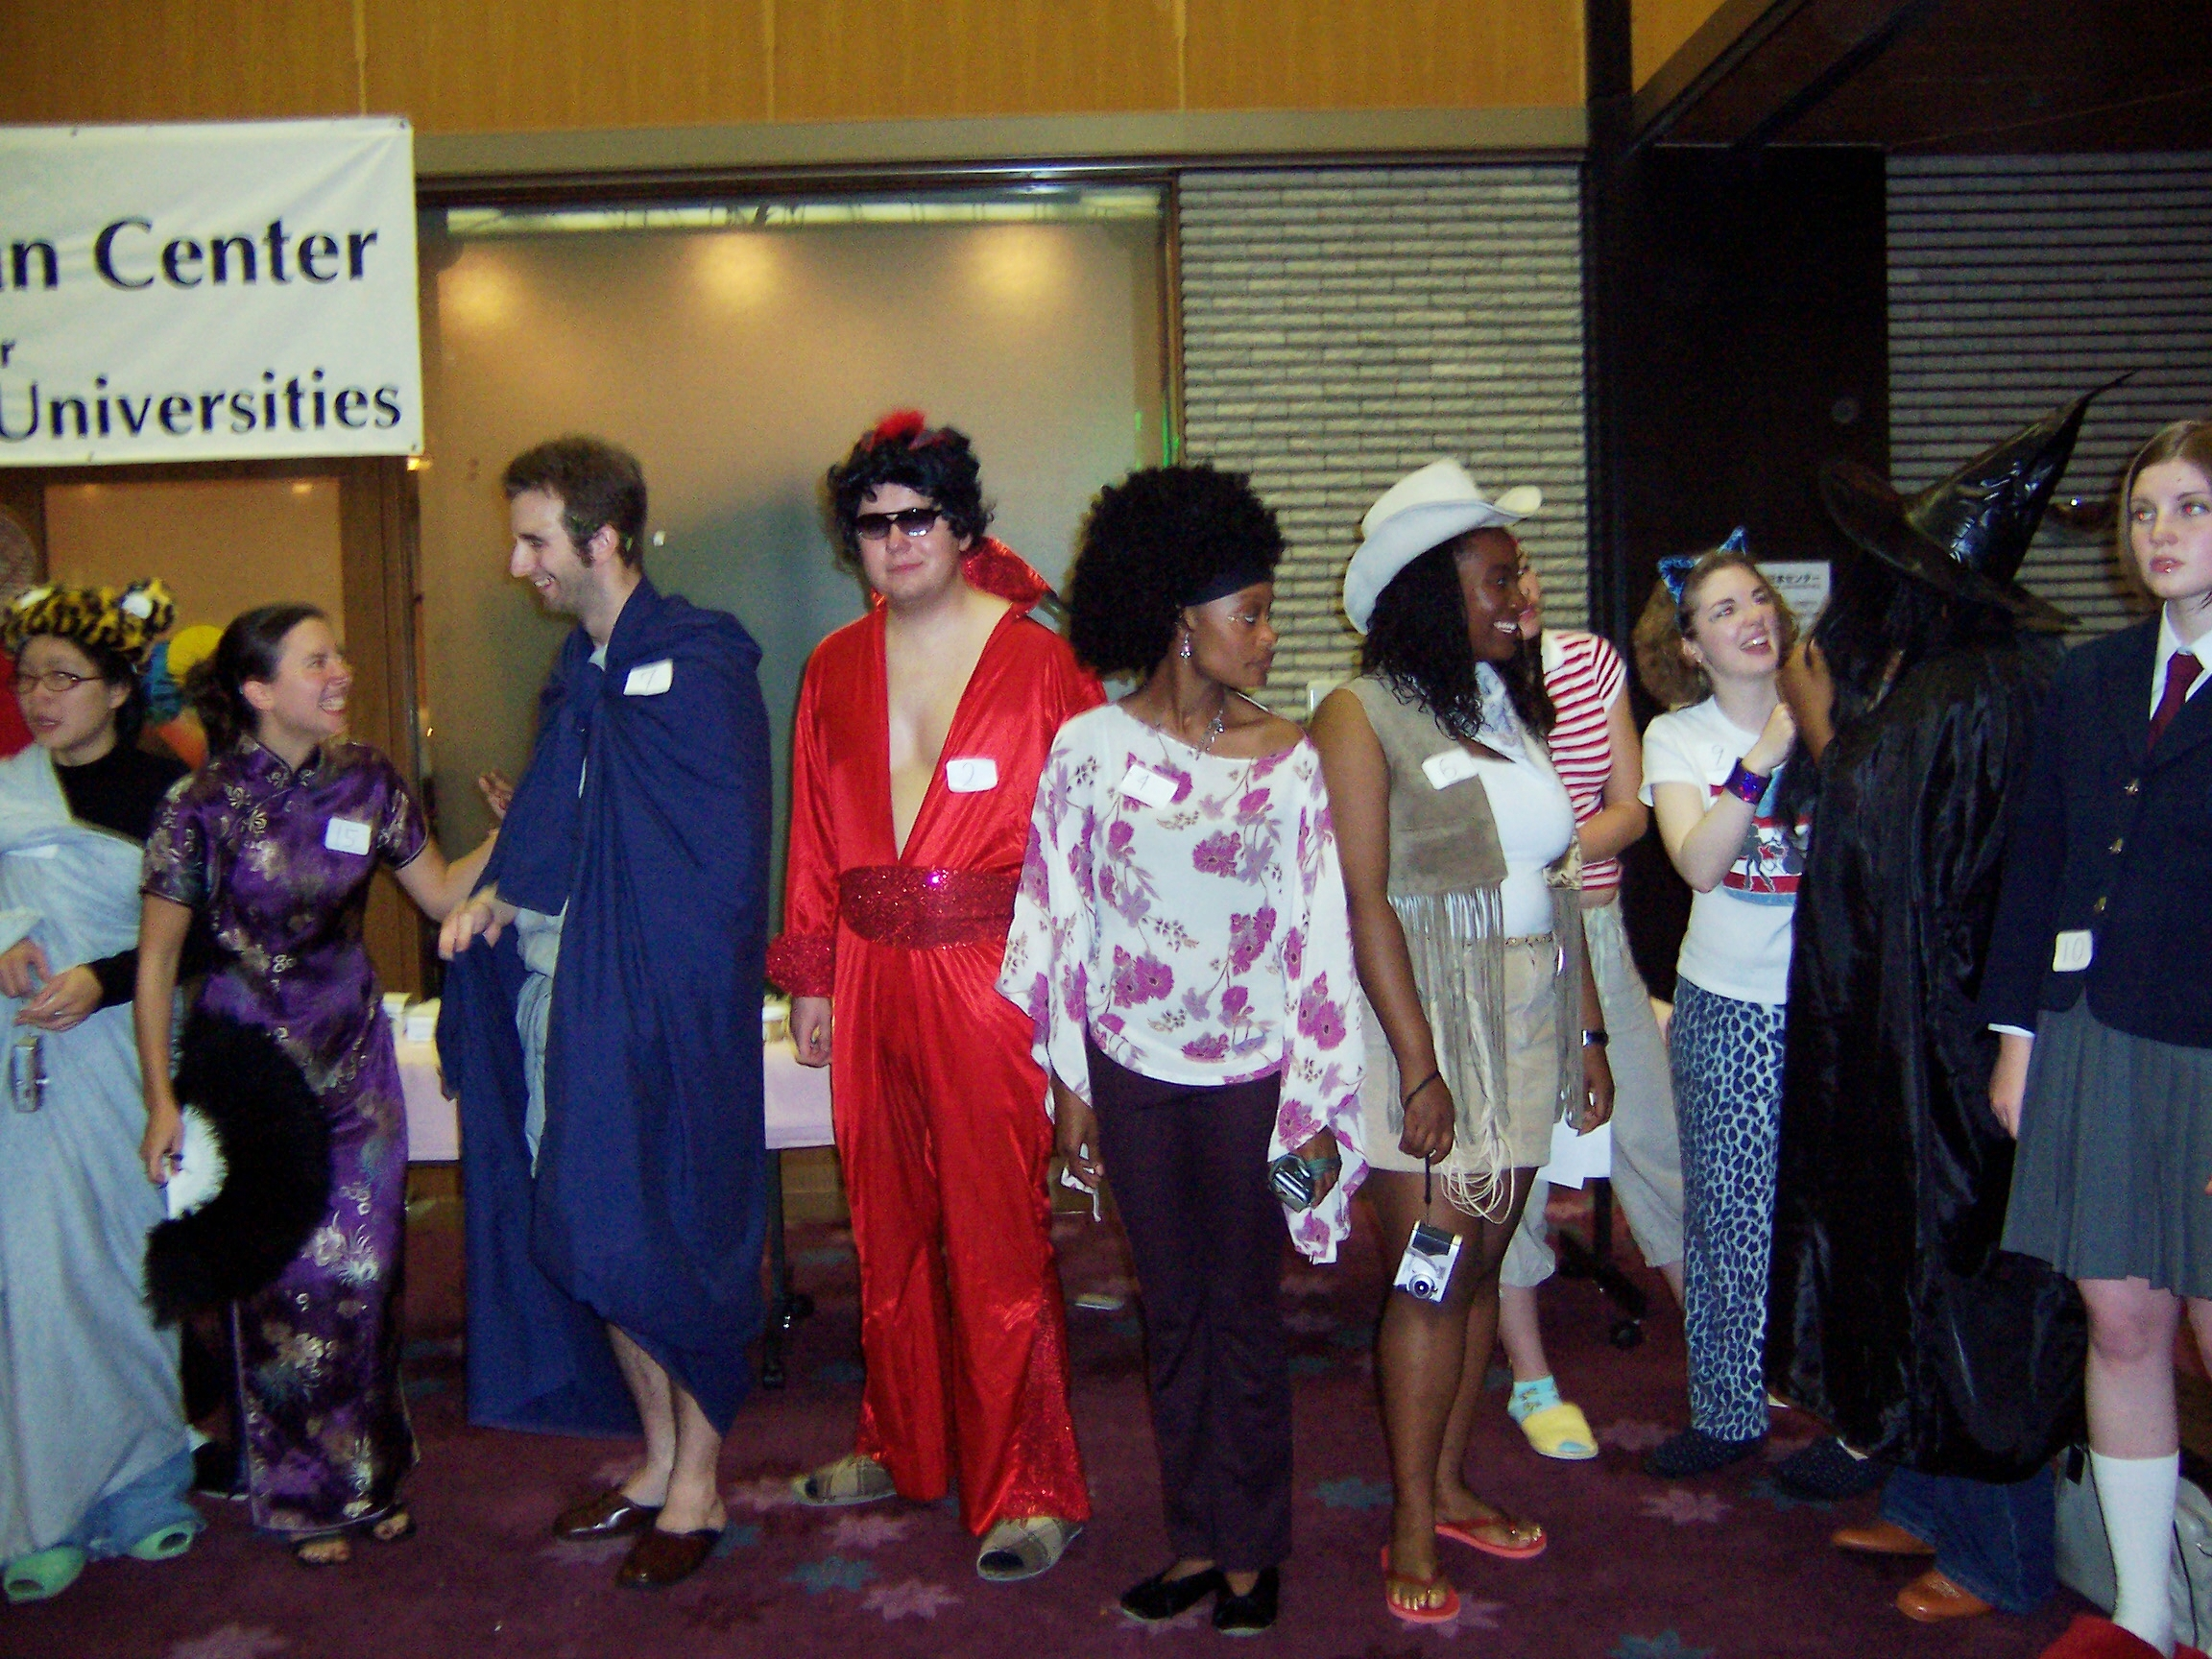 File:The Costume Contest Lineup.JPG - Wikimedia Commons